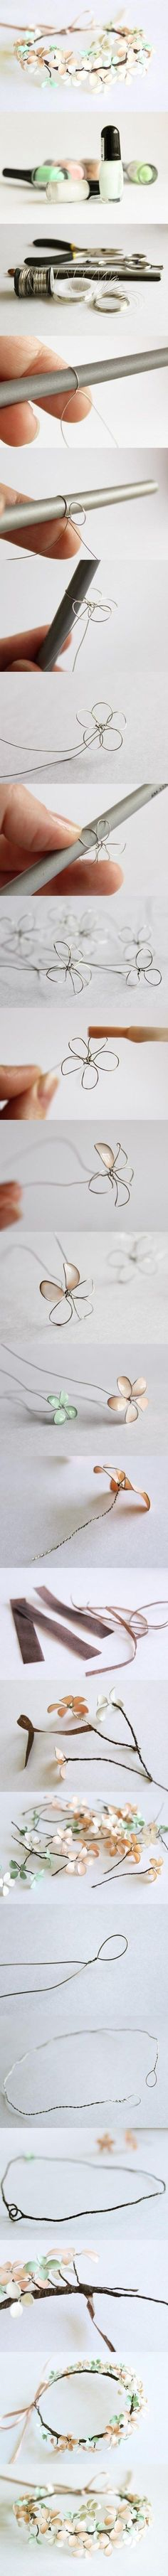 Wire Flower Headband Pictures, Photos, and Images for Facebook, Tumblr, Pinterest, and Twitter